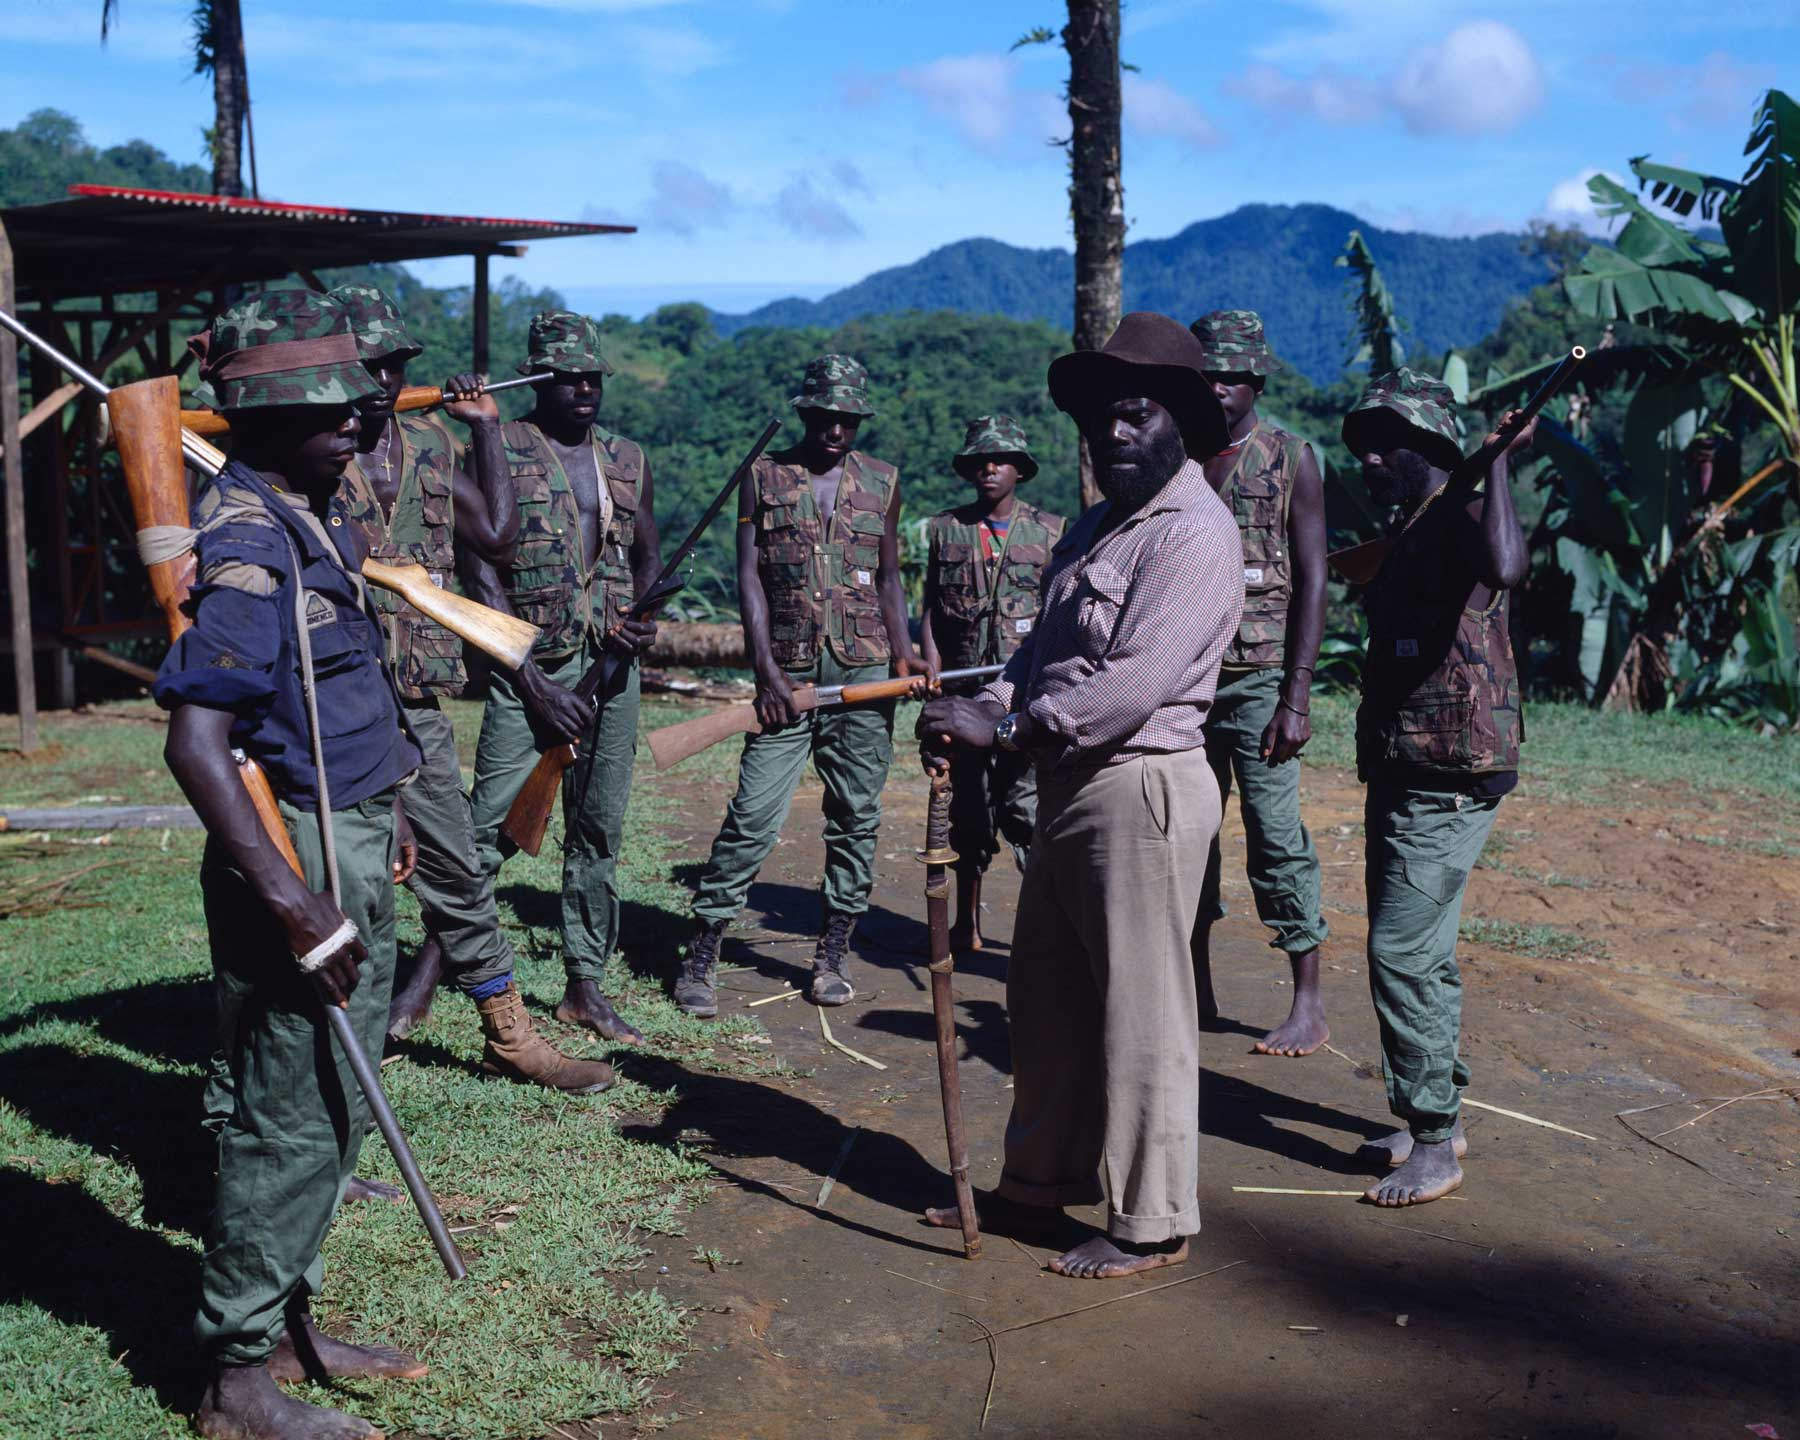 Bougainville Revolutionary Army leader Francis Ona (third from right) with a group of BRA guerrillas at Guava village above the Panguna mine, 1994